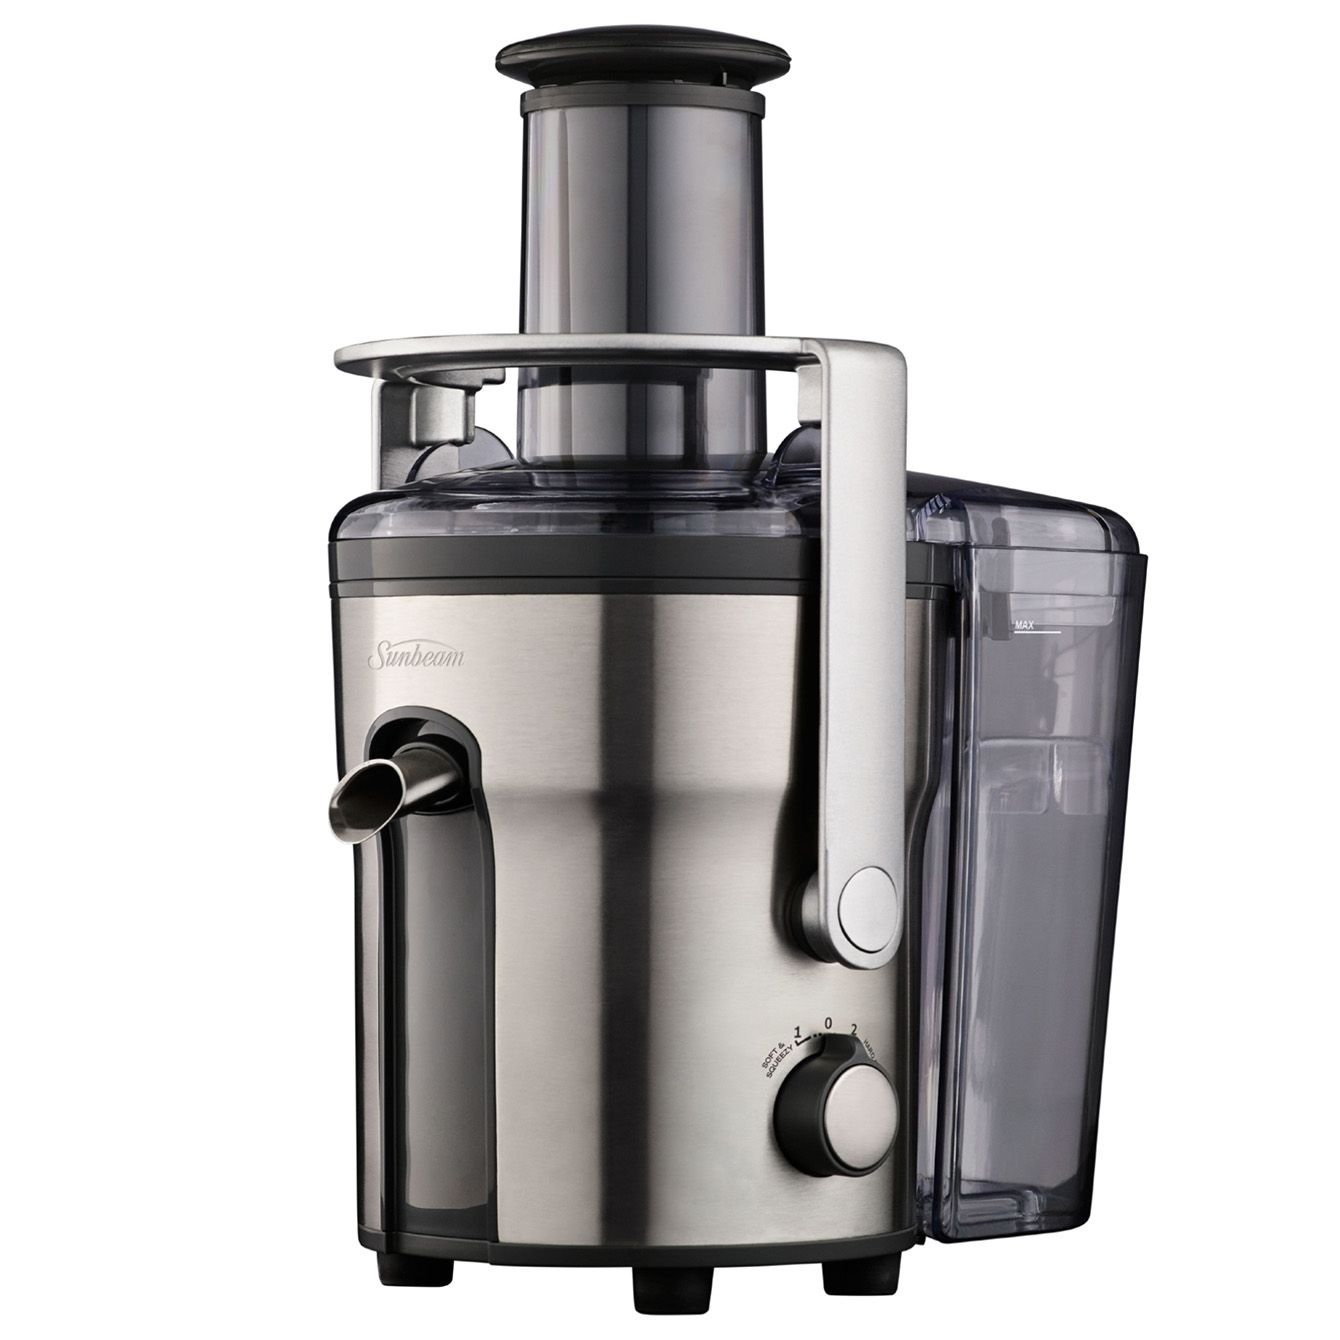 Sunbeam Double Sieve Juicer Pro JE7800 Juicer